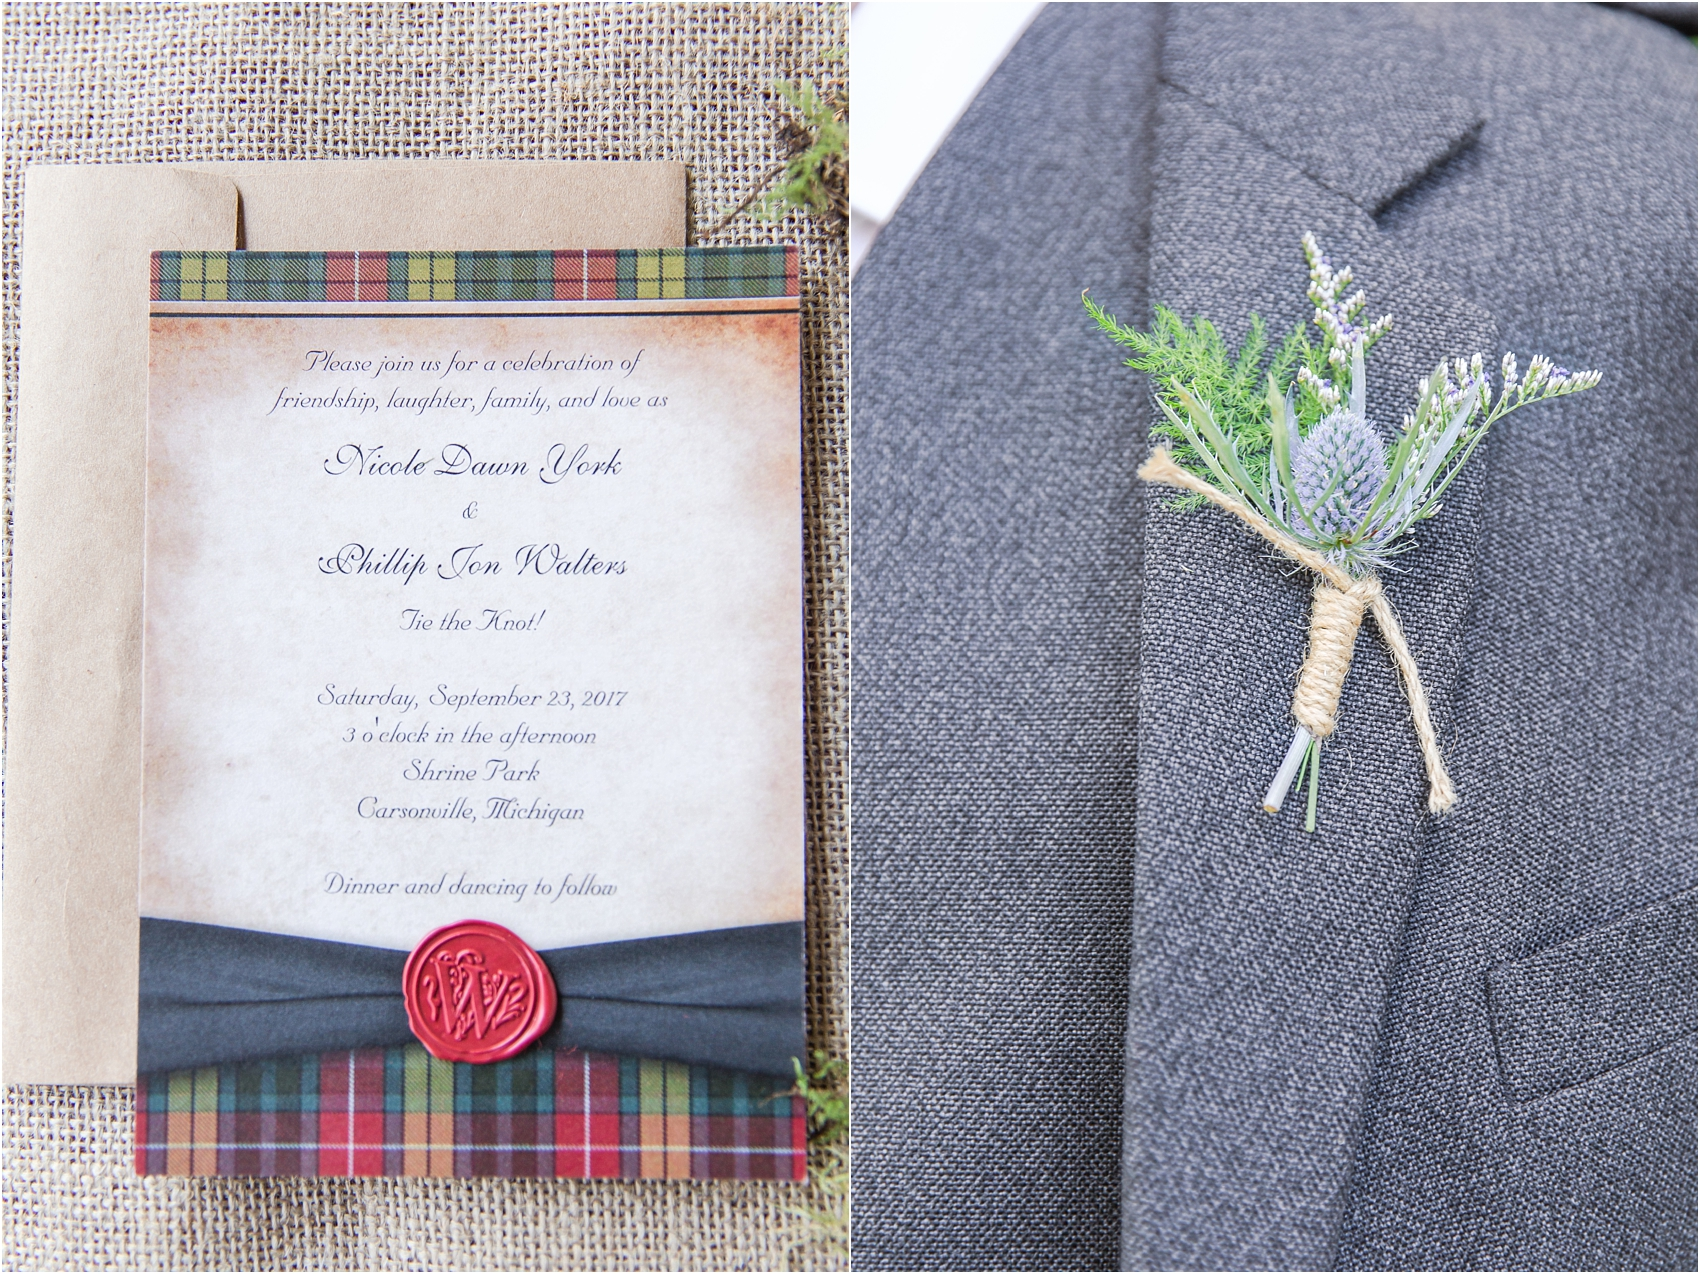 scottish-inspired-wedding-photos-in-the-country-in-port-sanilac-michigan-by-courtney-carolyn-photography_0007.jpg